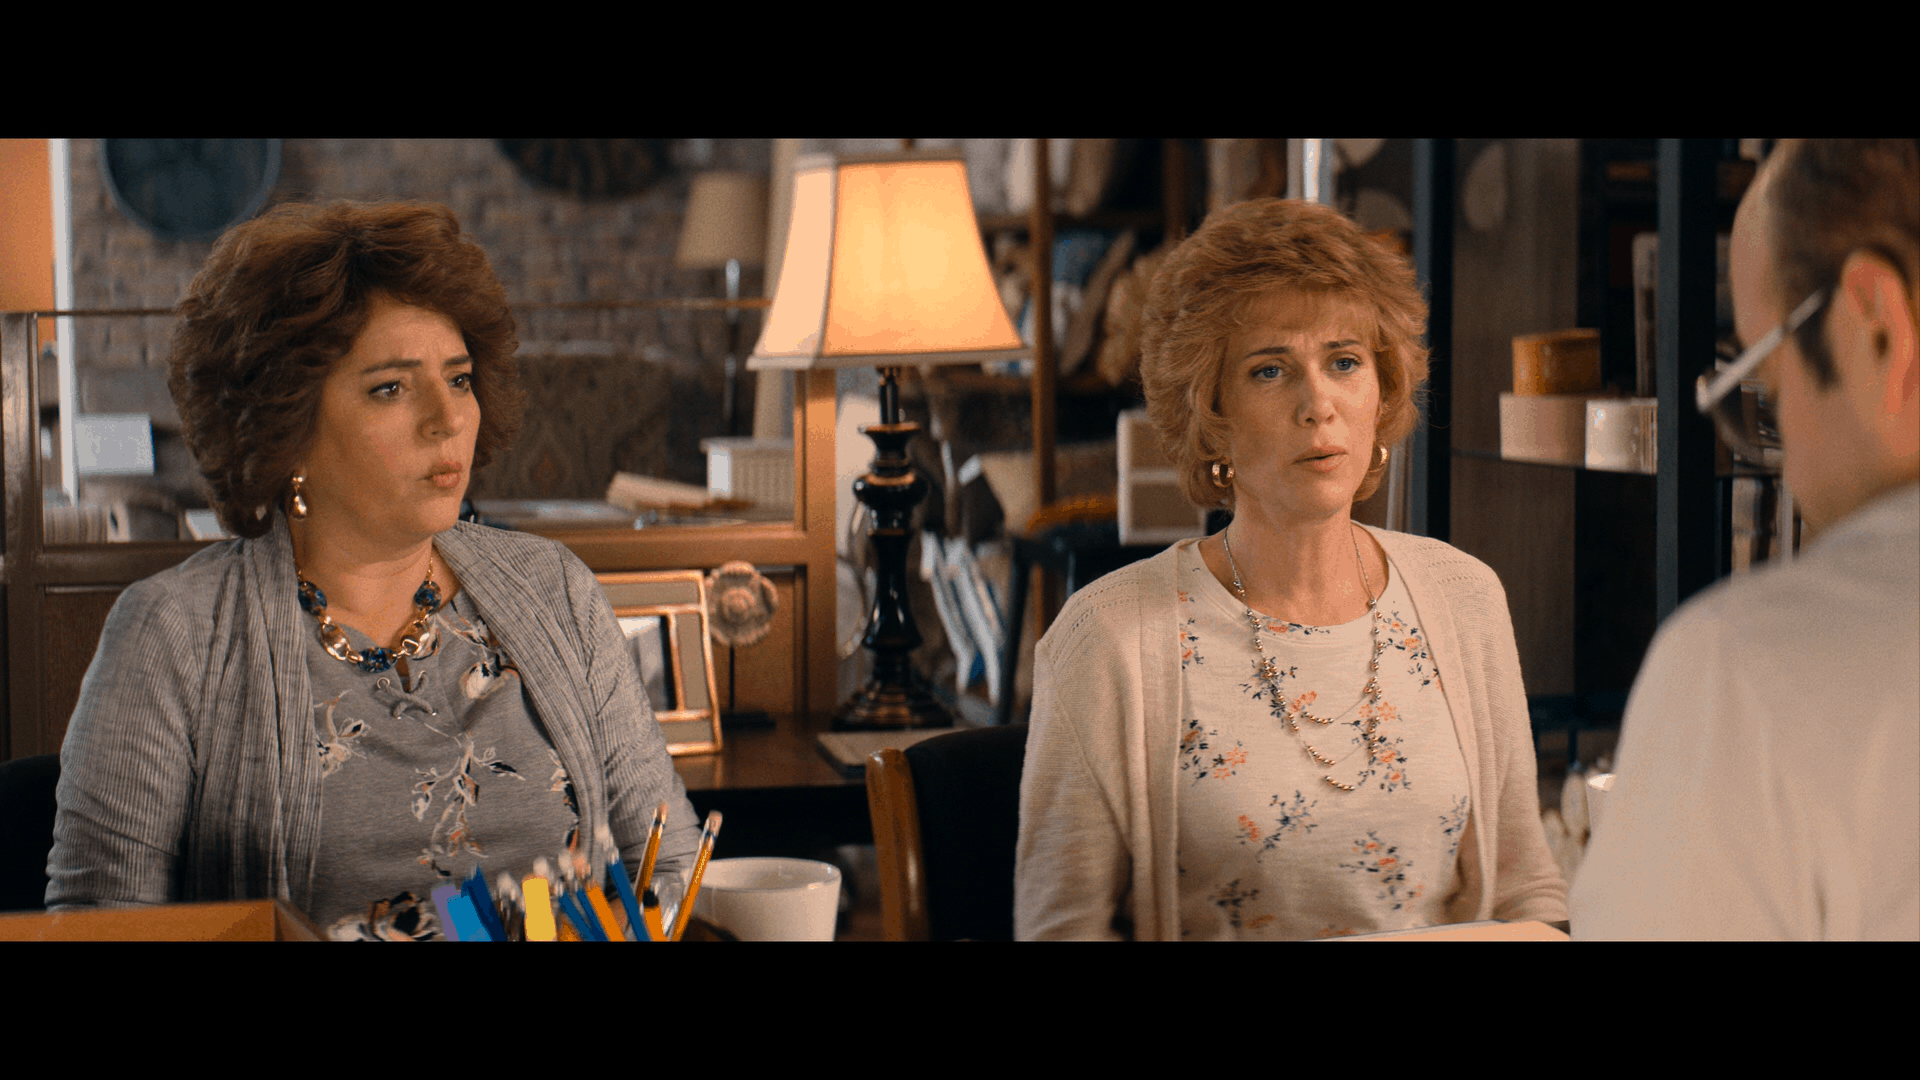 Barb and Star Go to Vista Del Mar (2021) [Blu-ray review] 6